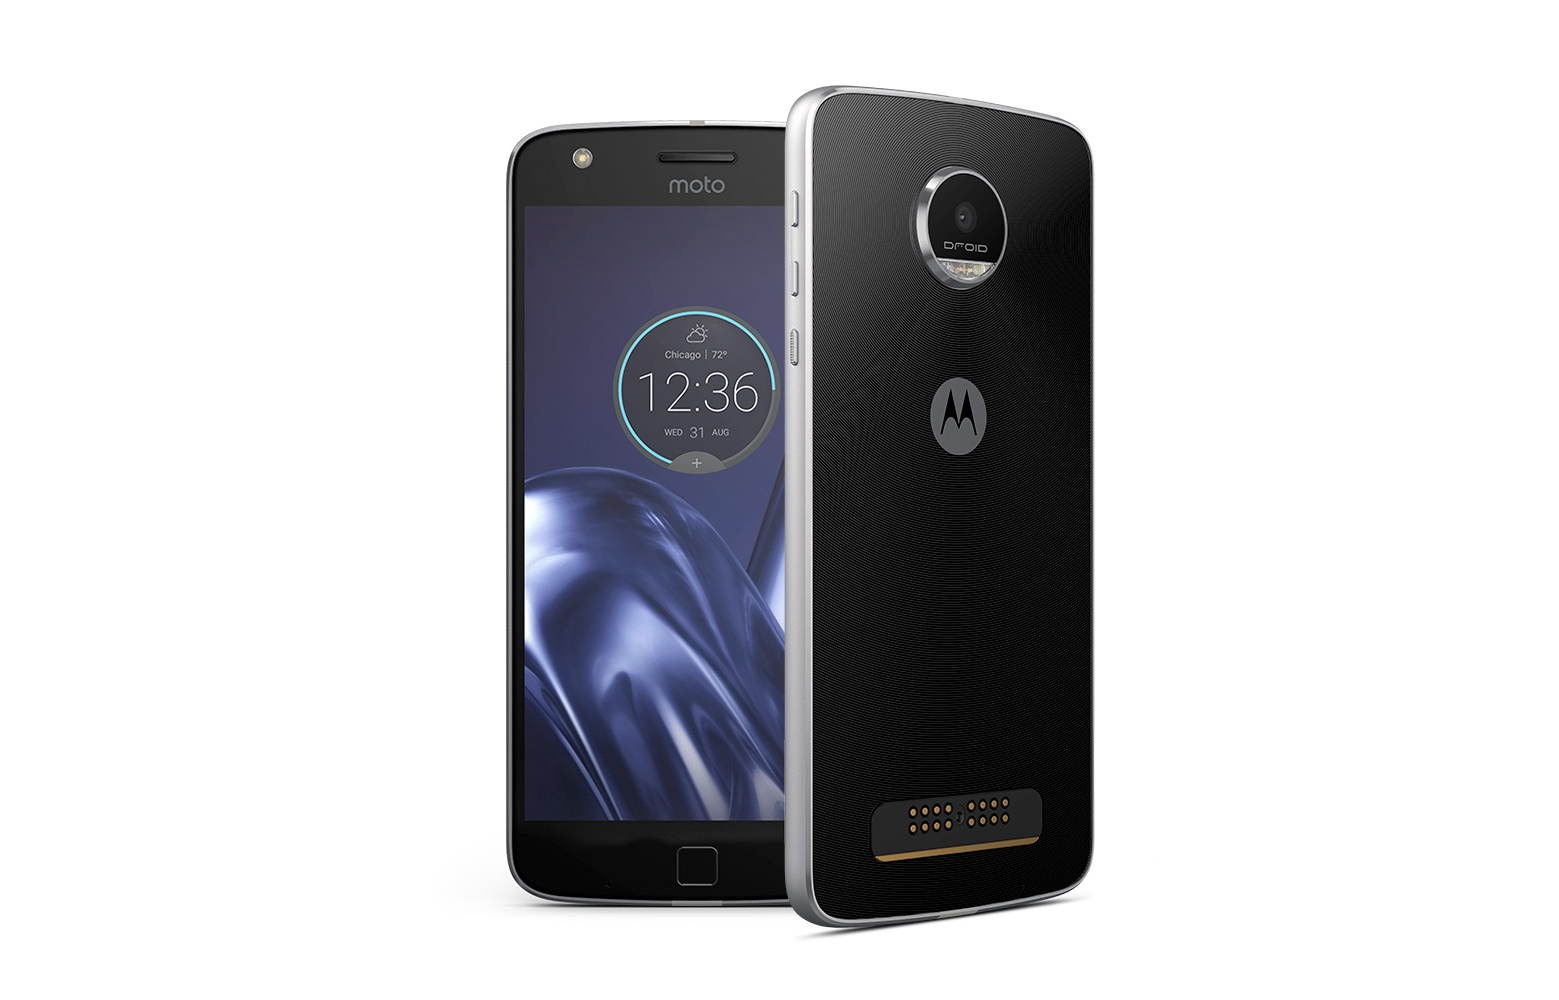 How To Retrieve Erased Music From Motorola Moto Z Play